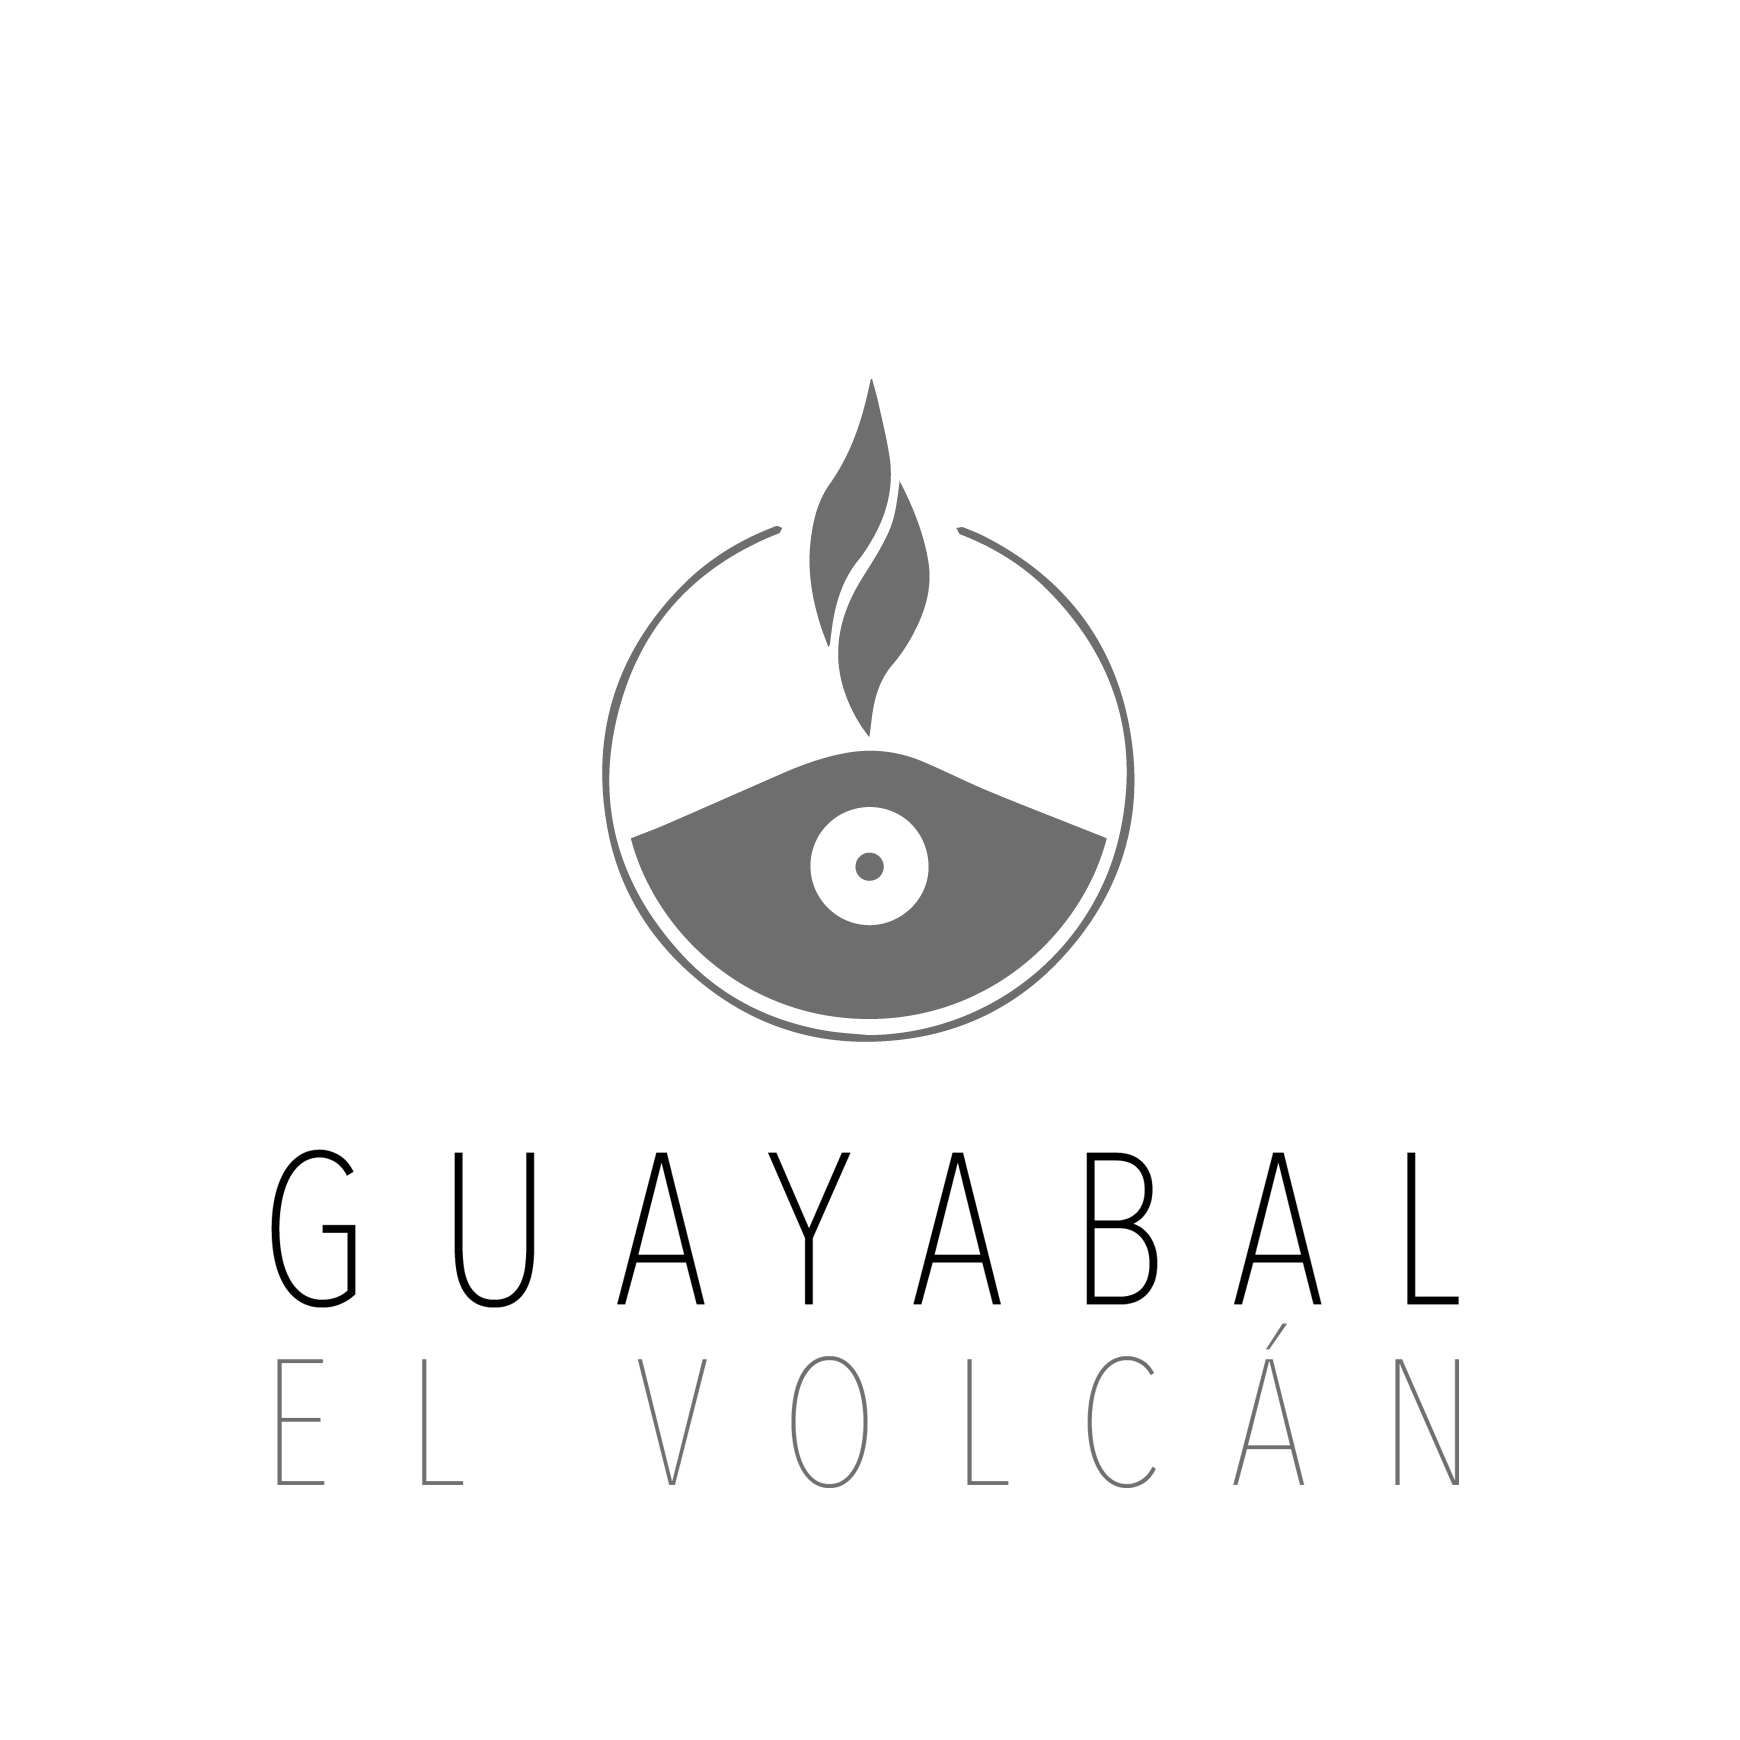 Association - Guayabal el volcán